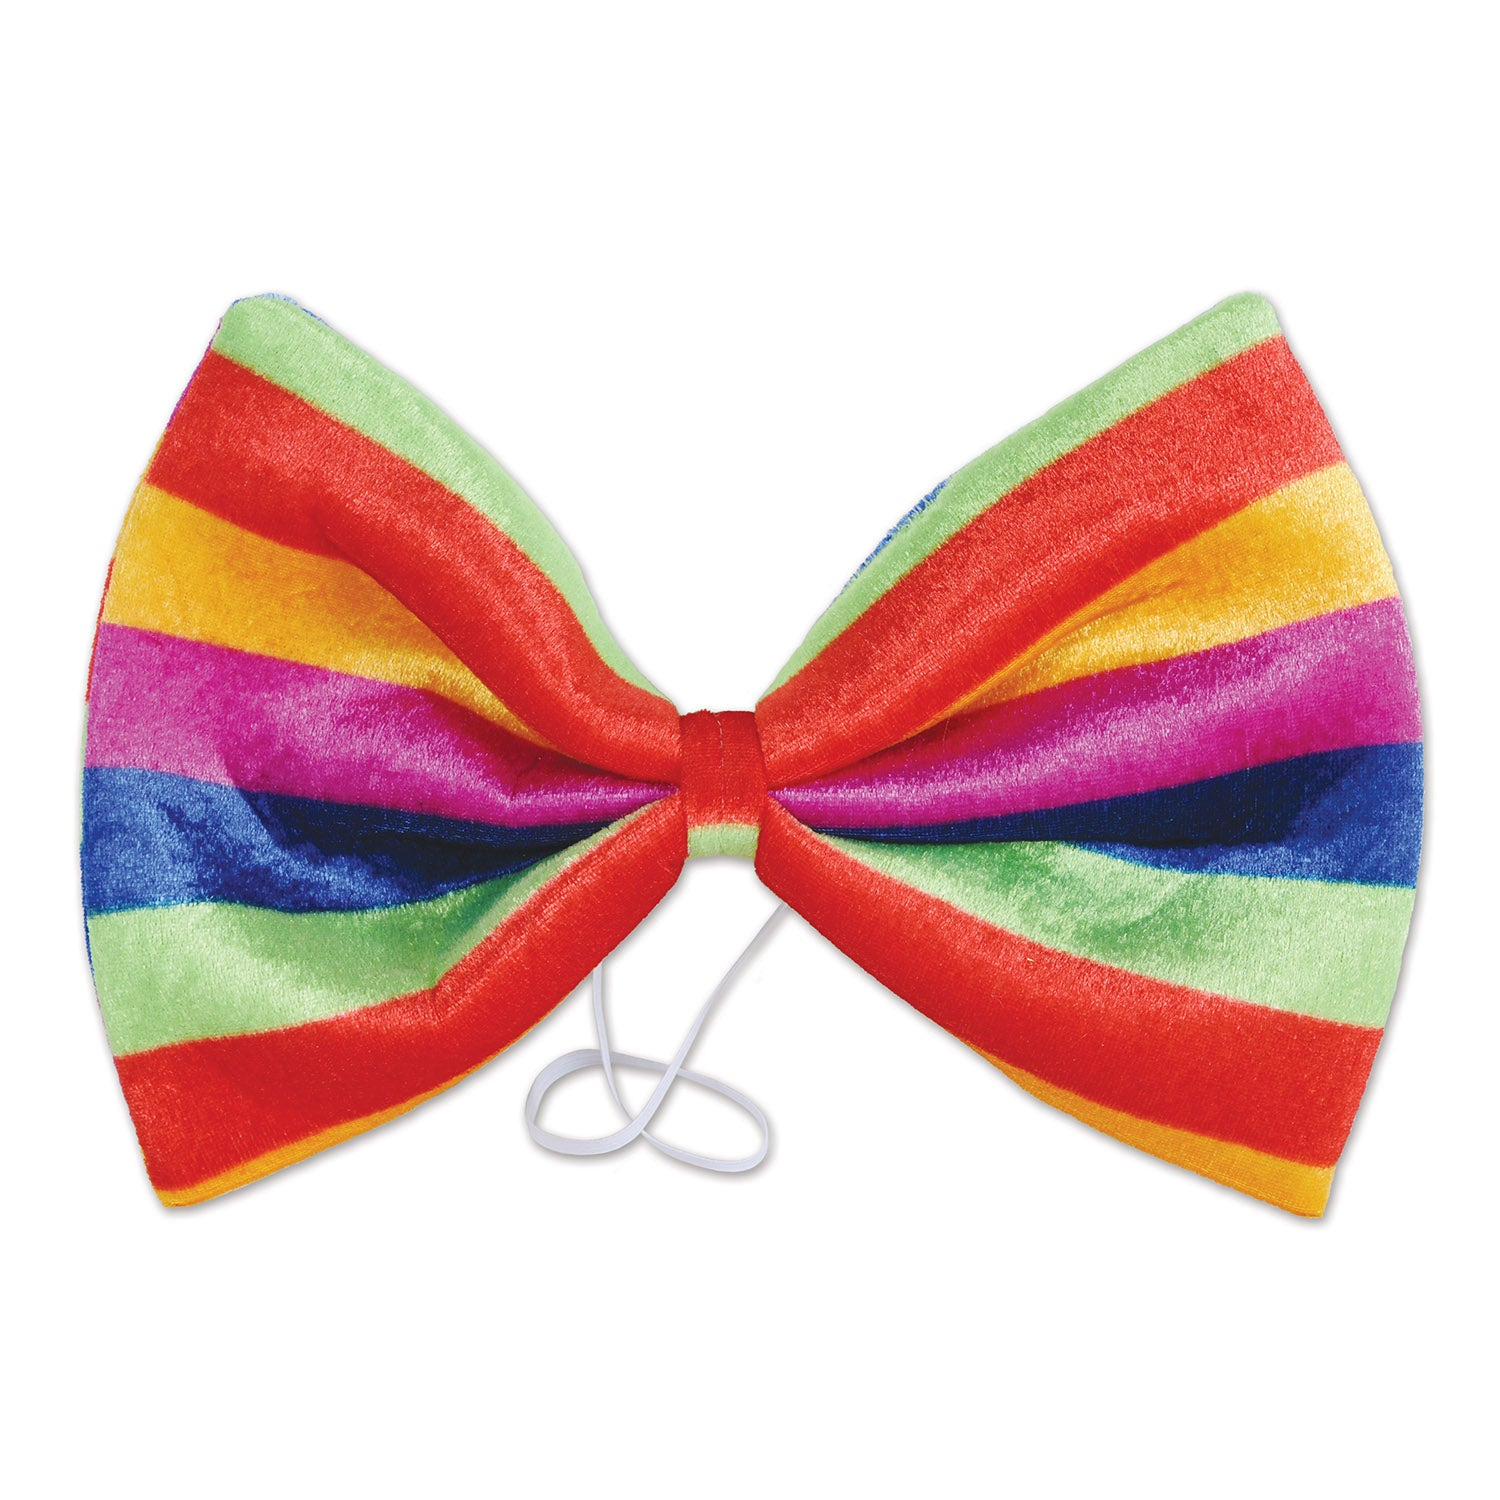 Jumbo Rainbow Bow Tie by Beistle - Rainbow Theme Decorations